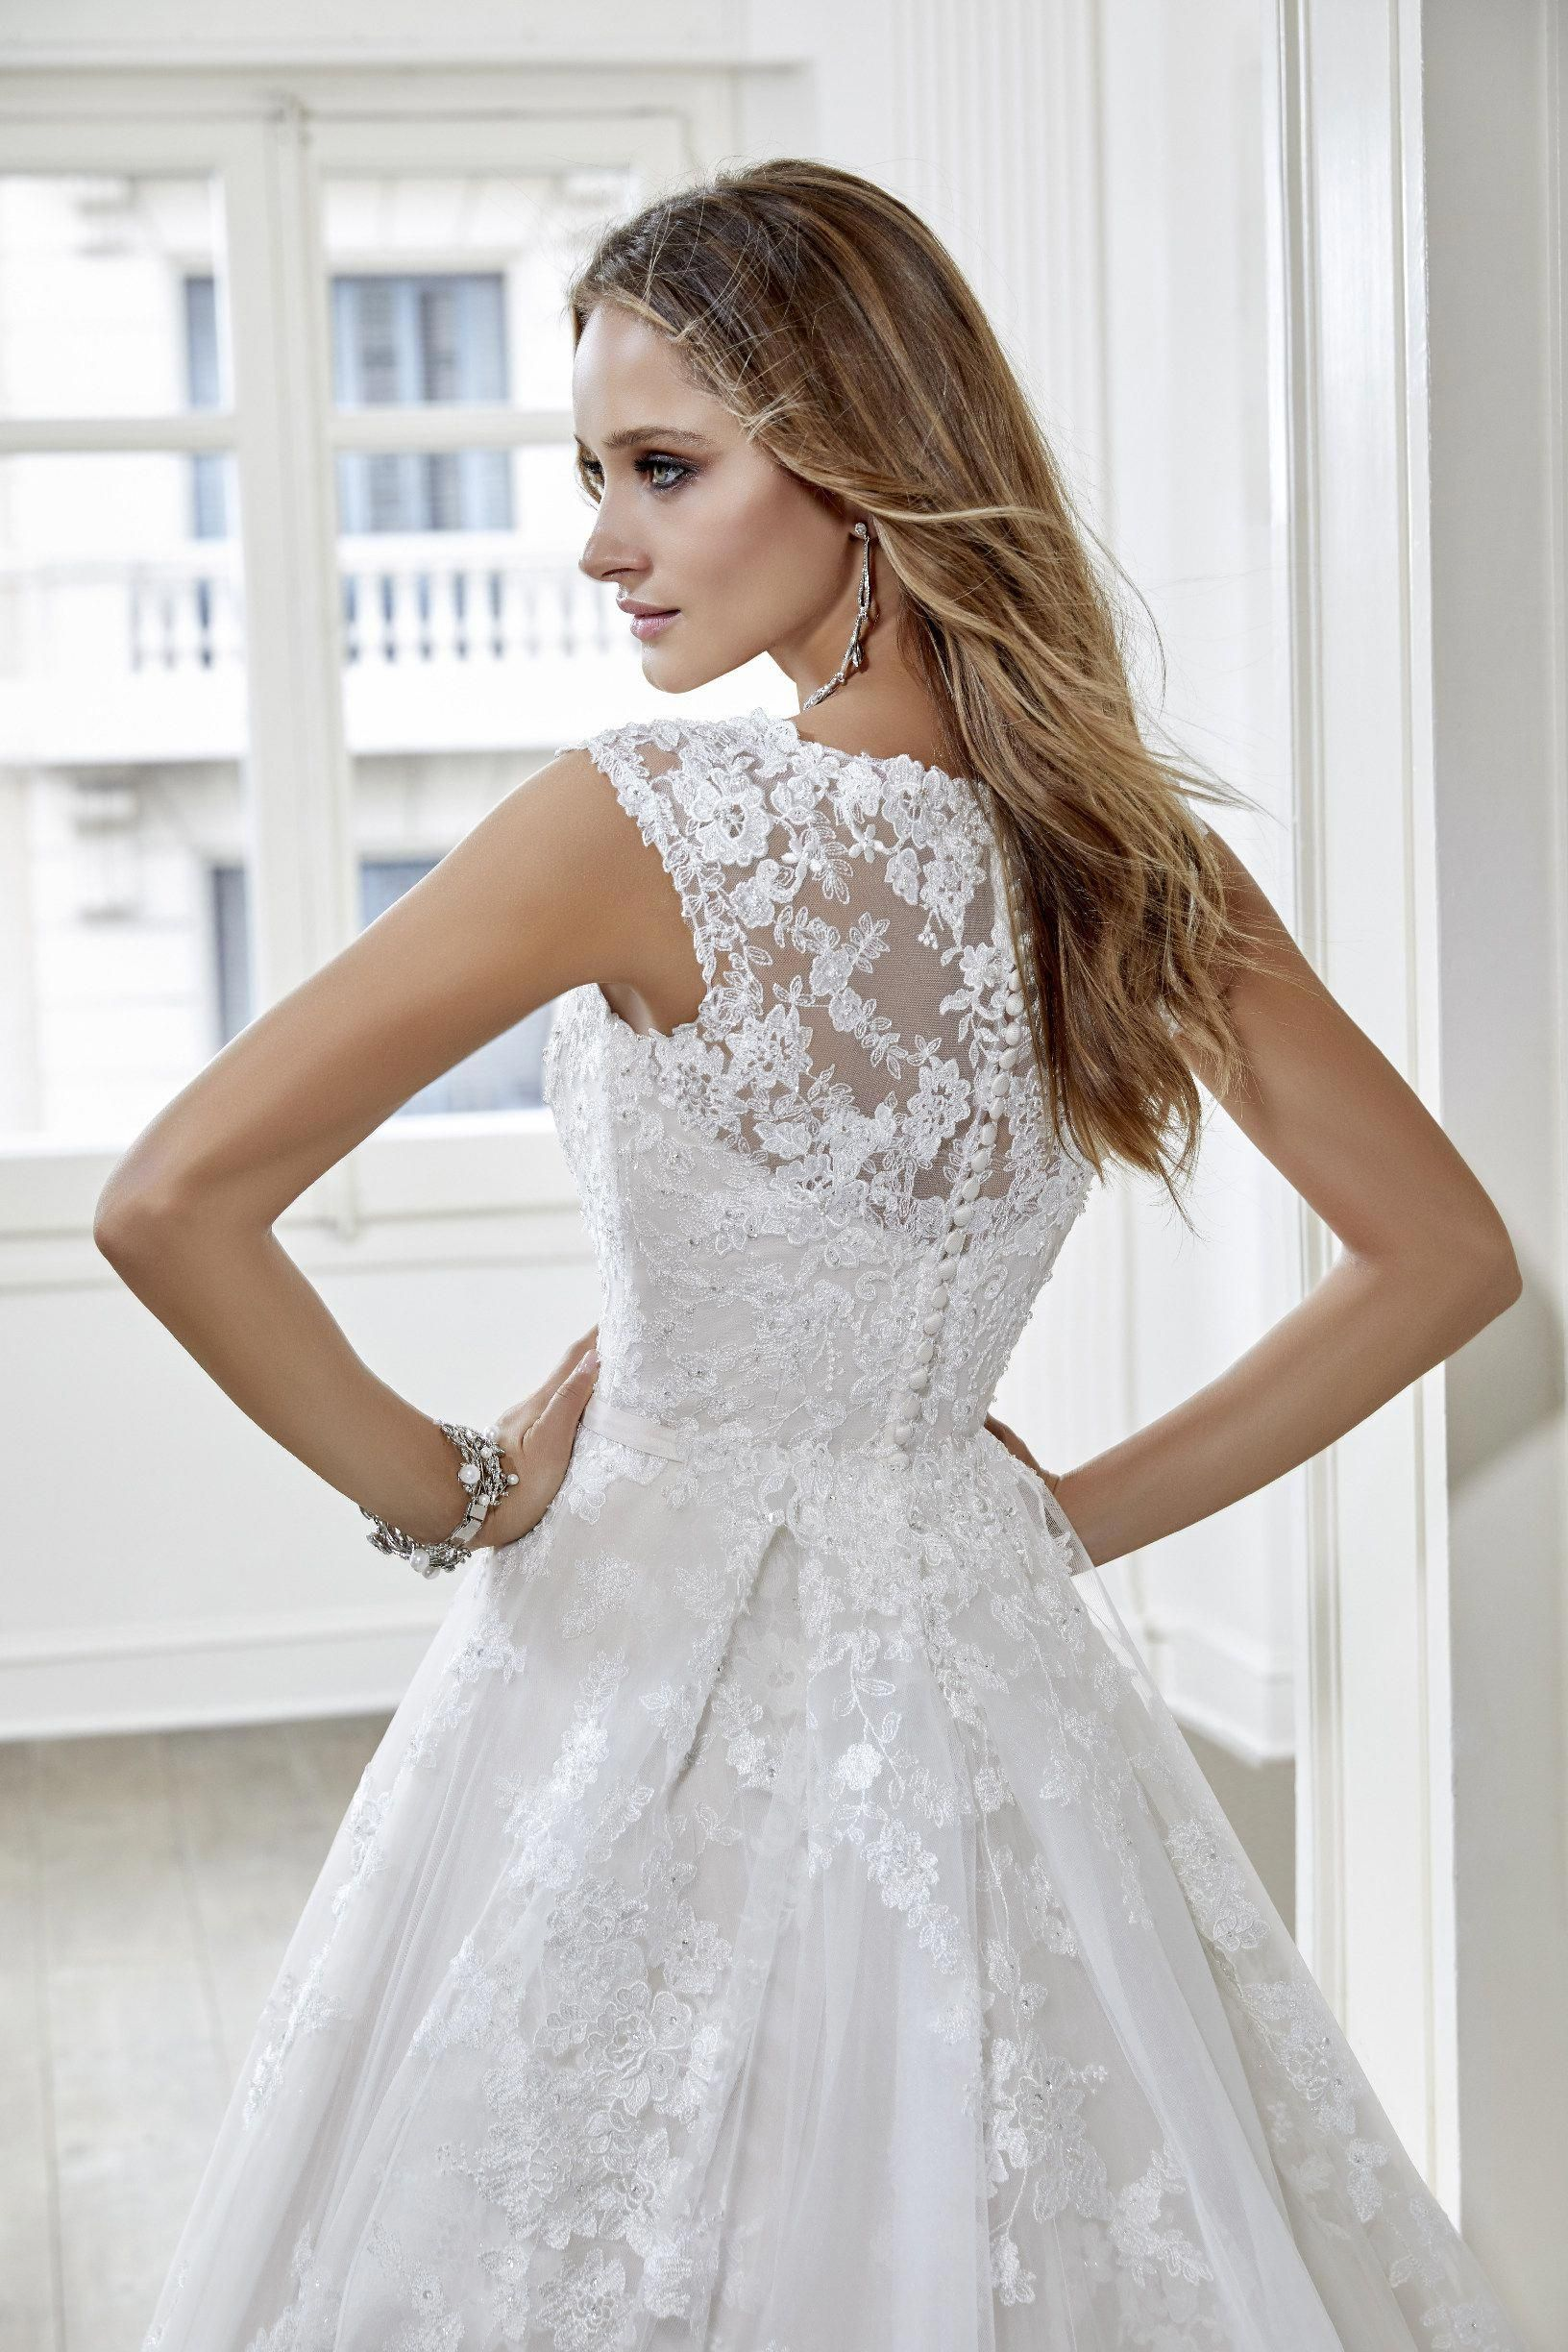 Bridal gowns can take 4 to ten months to come from the